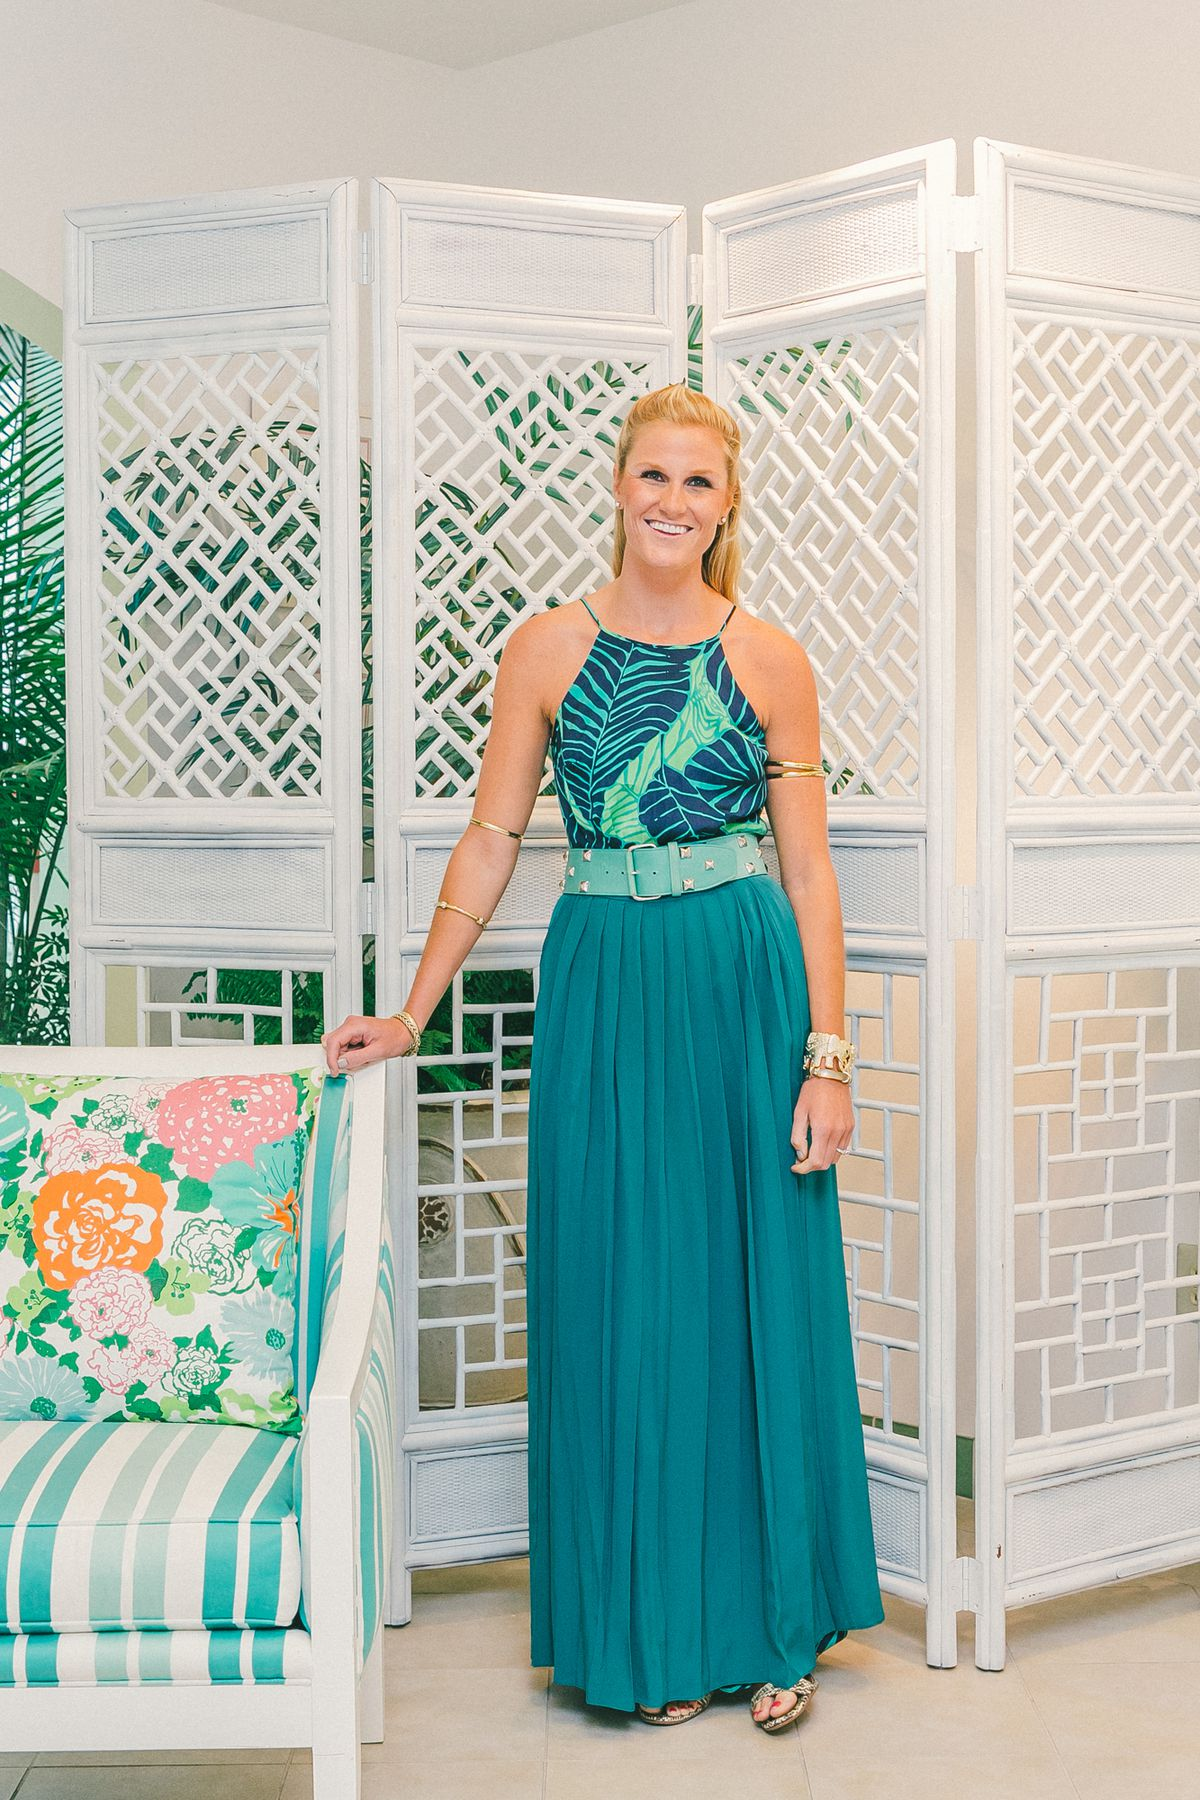 Marguerite-Walters-Lilly-Pulitzer